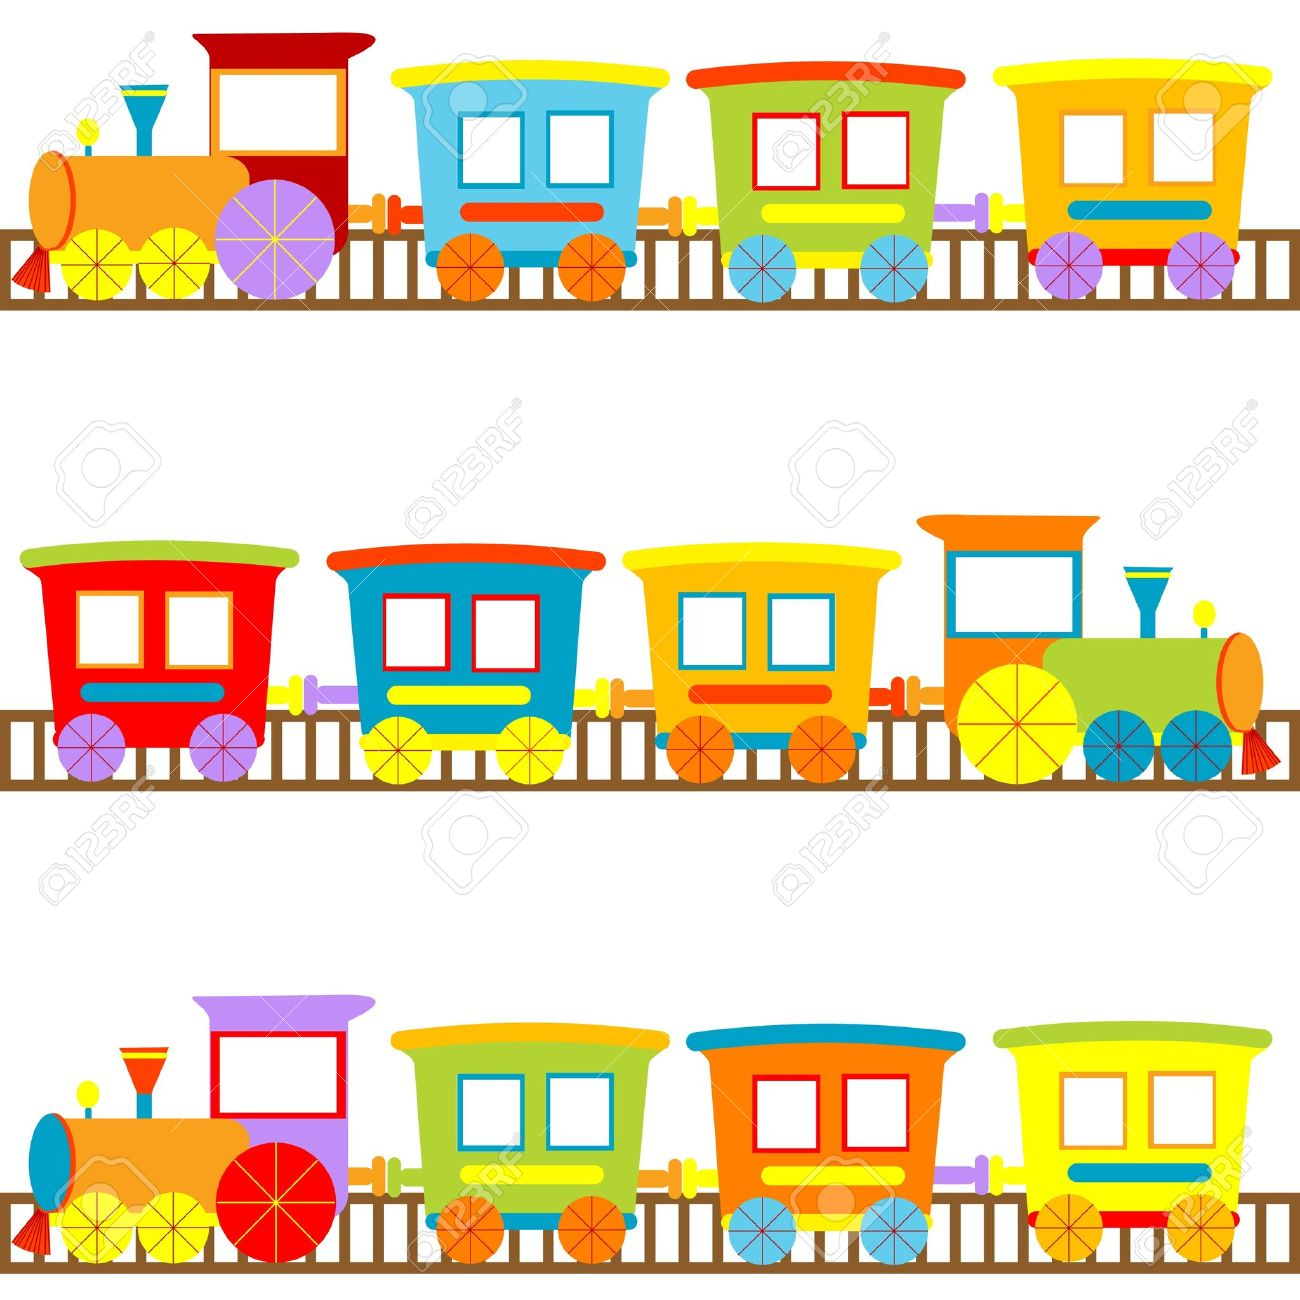 background for kids with cartoon trains royalty free cliparts